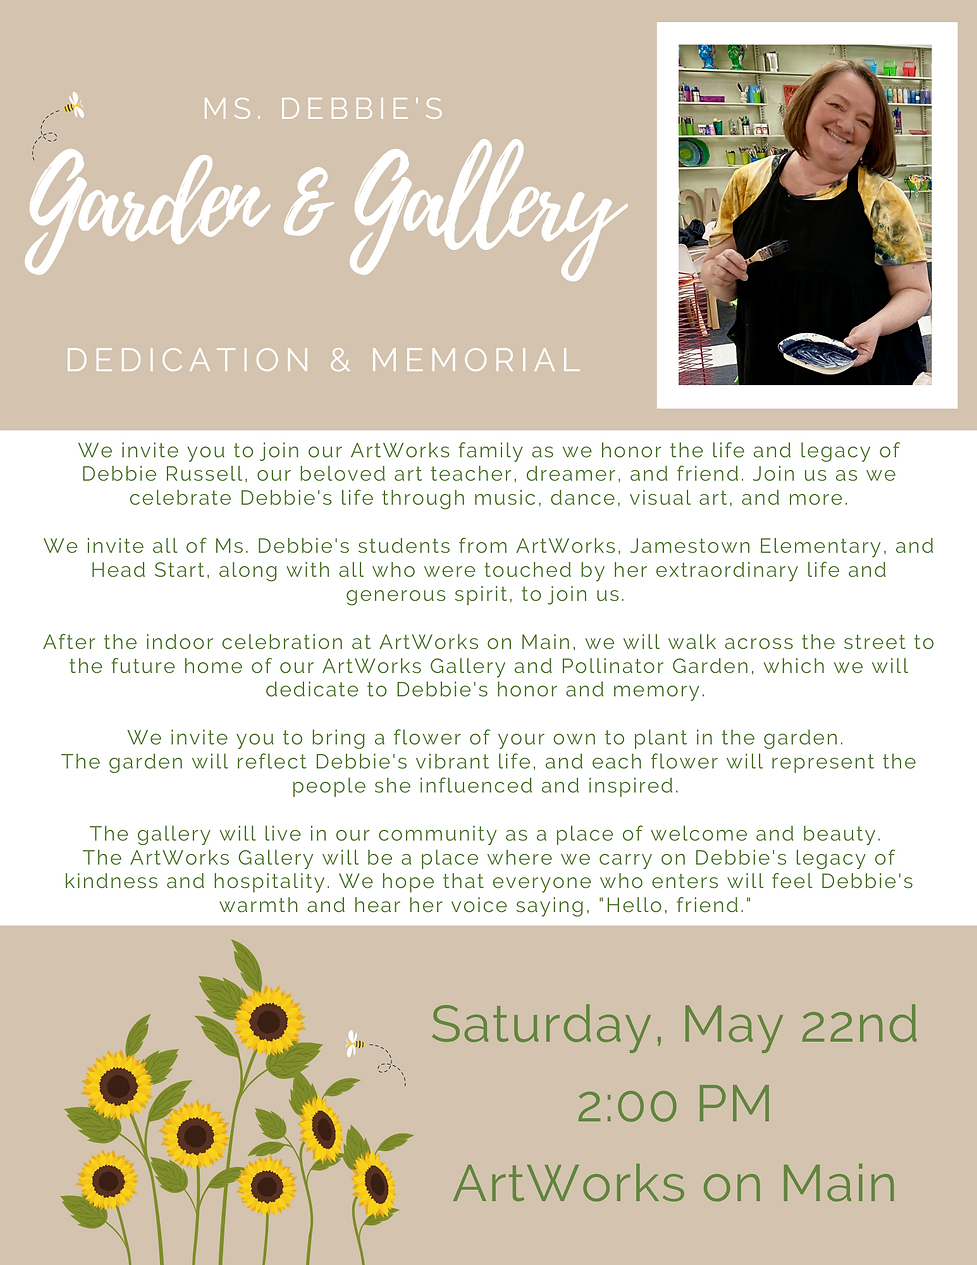 Garden & Gallery Flyer.png